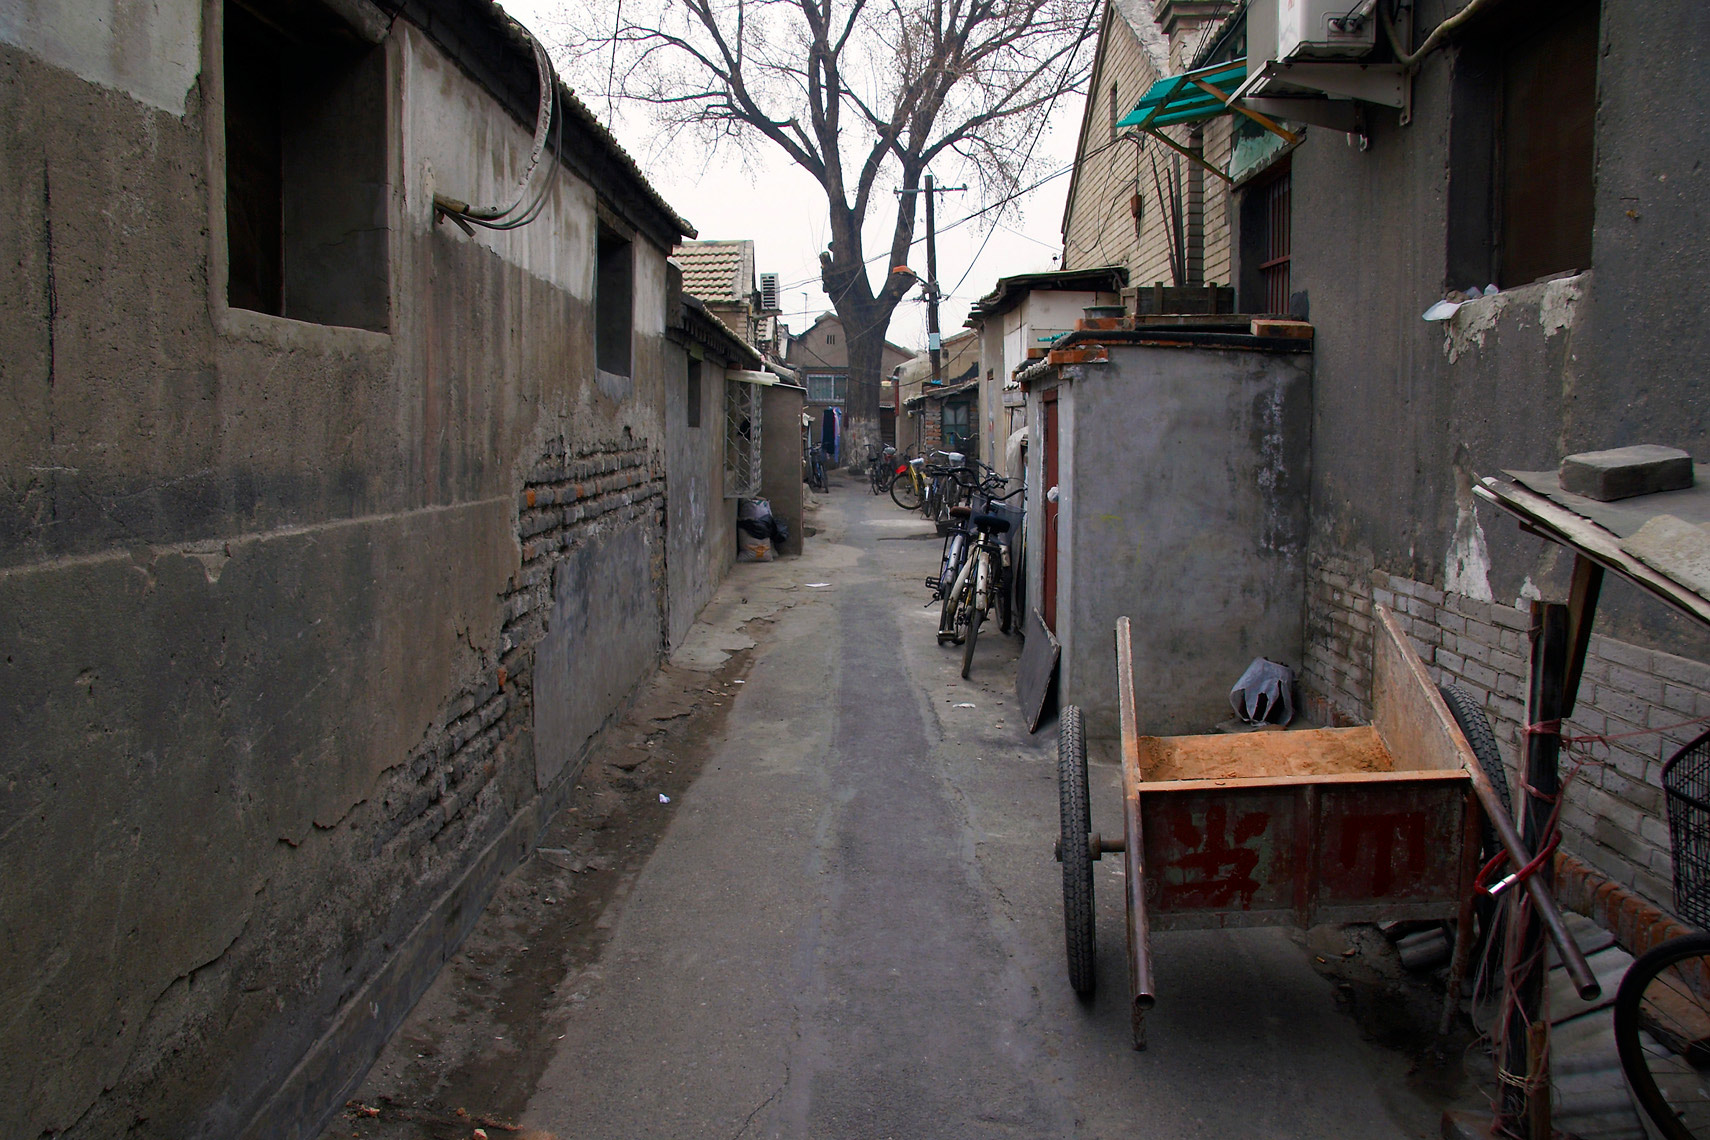 HDinas_Travel_China_AlleyWay.jpg